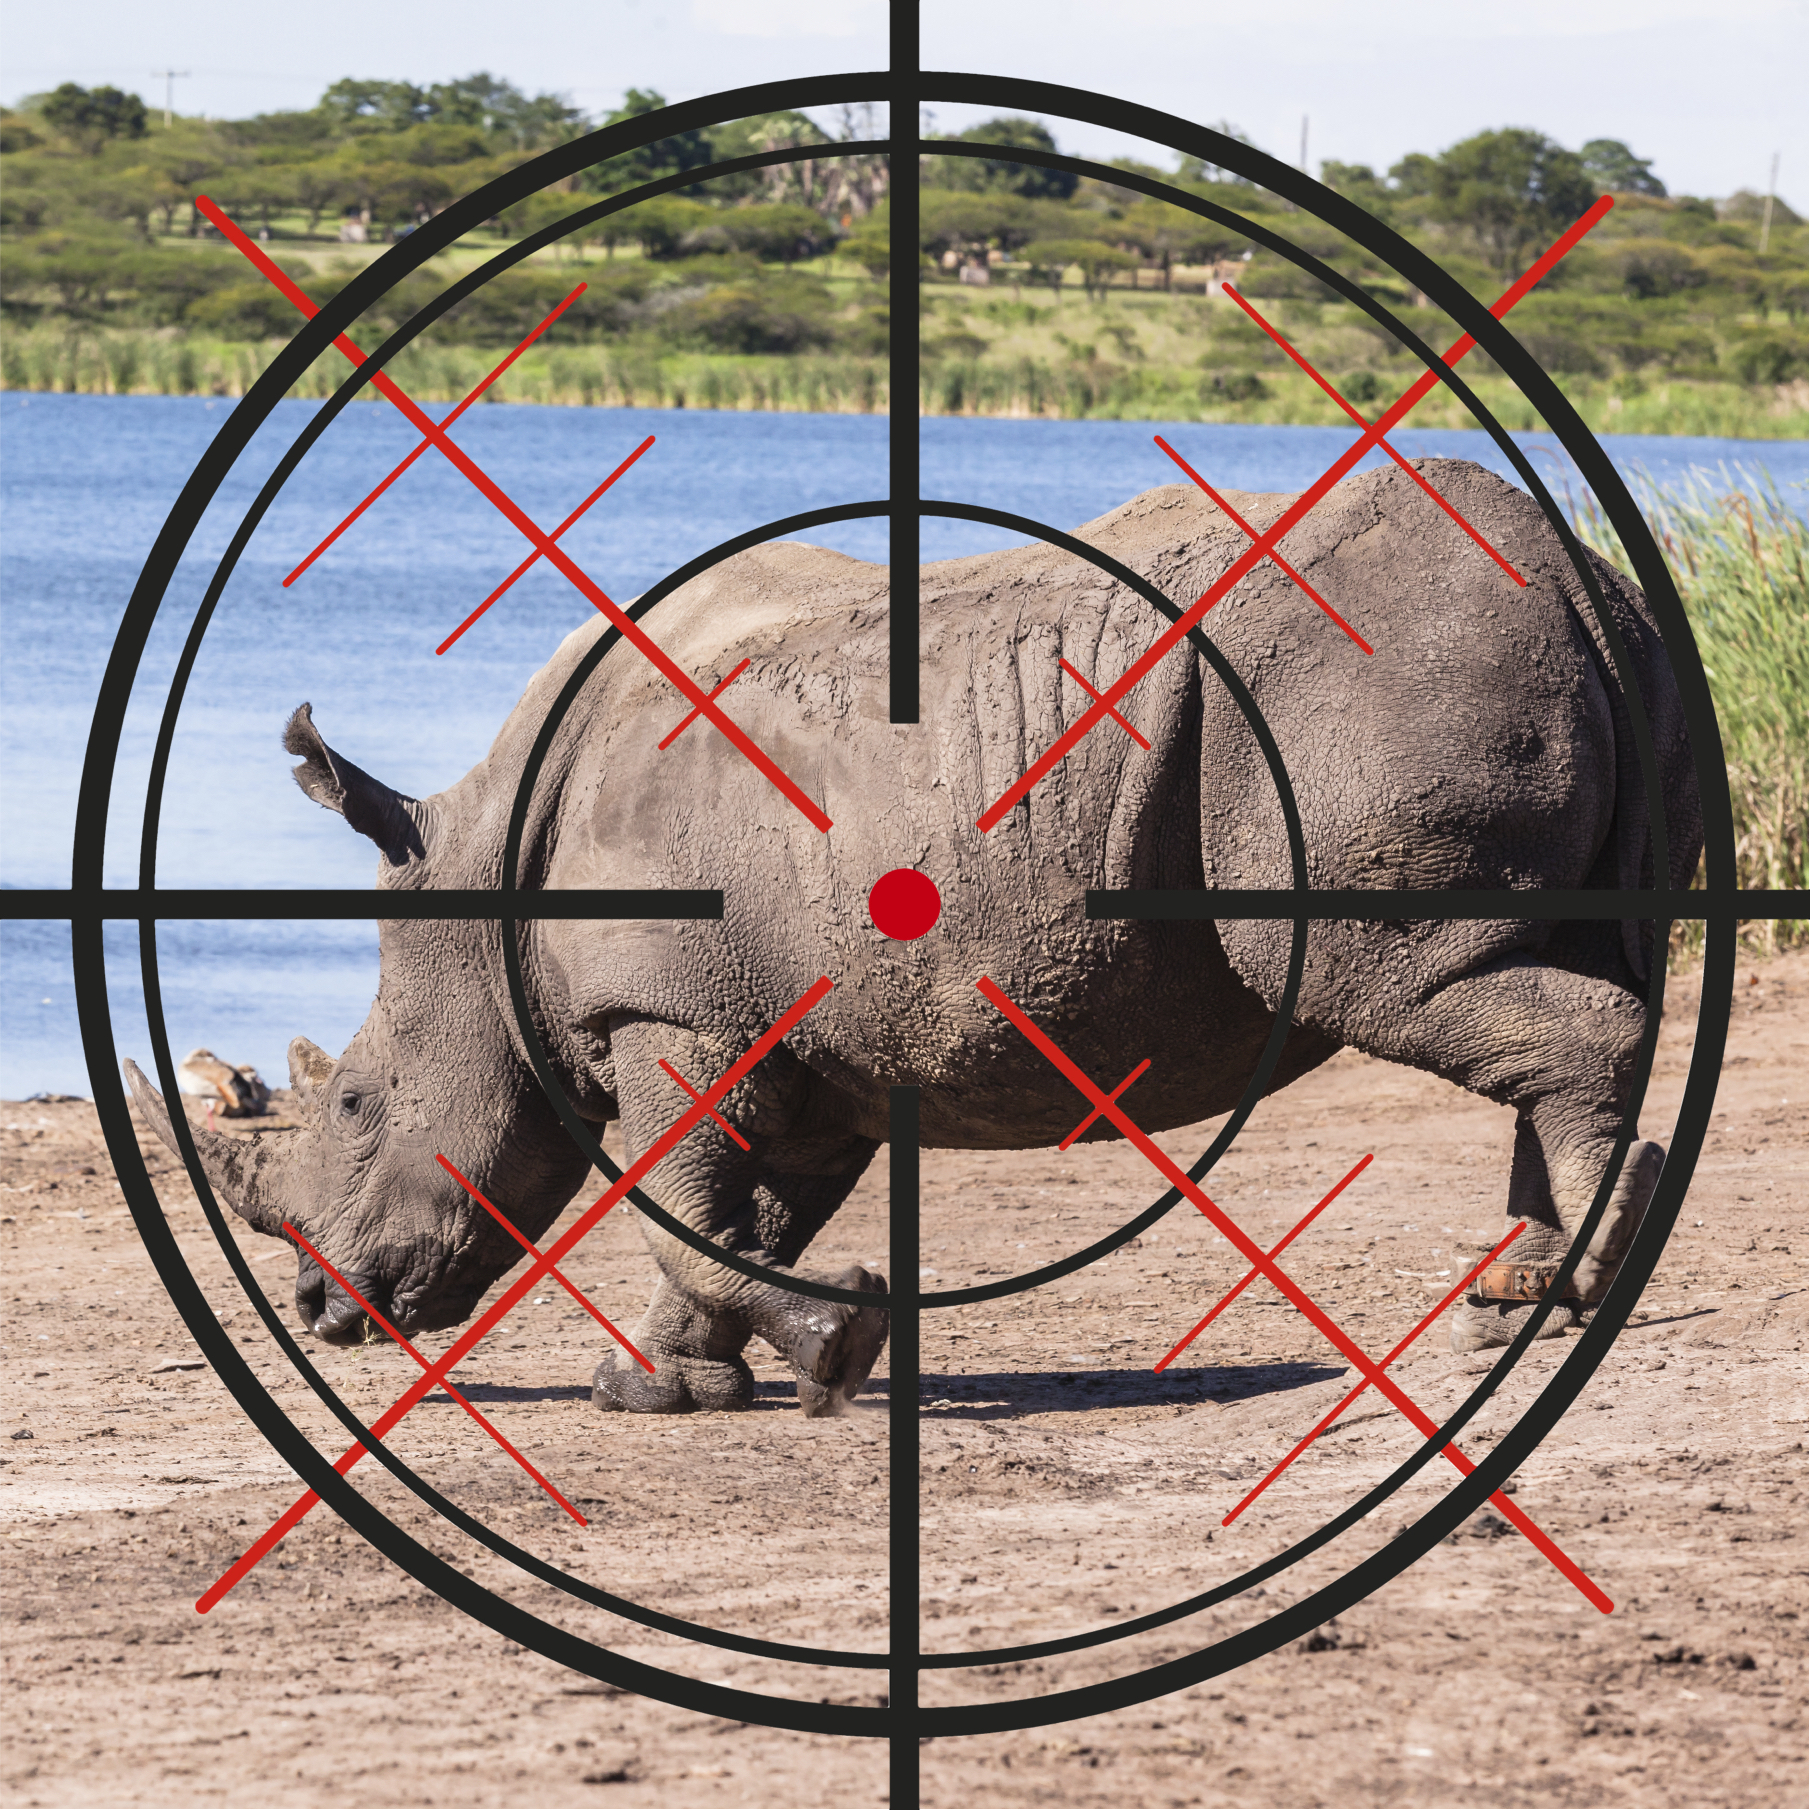 Rhino in the cross hairs at a watering hole